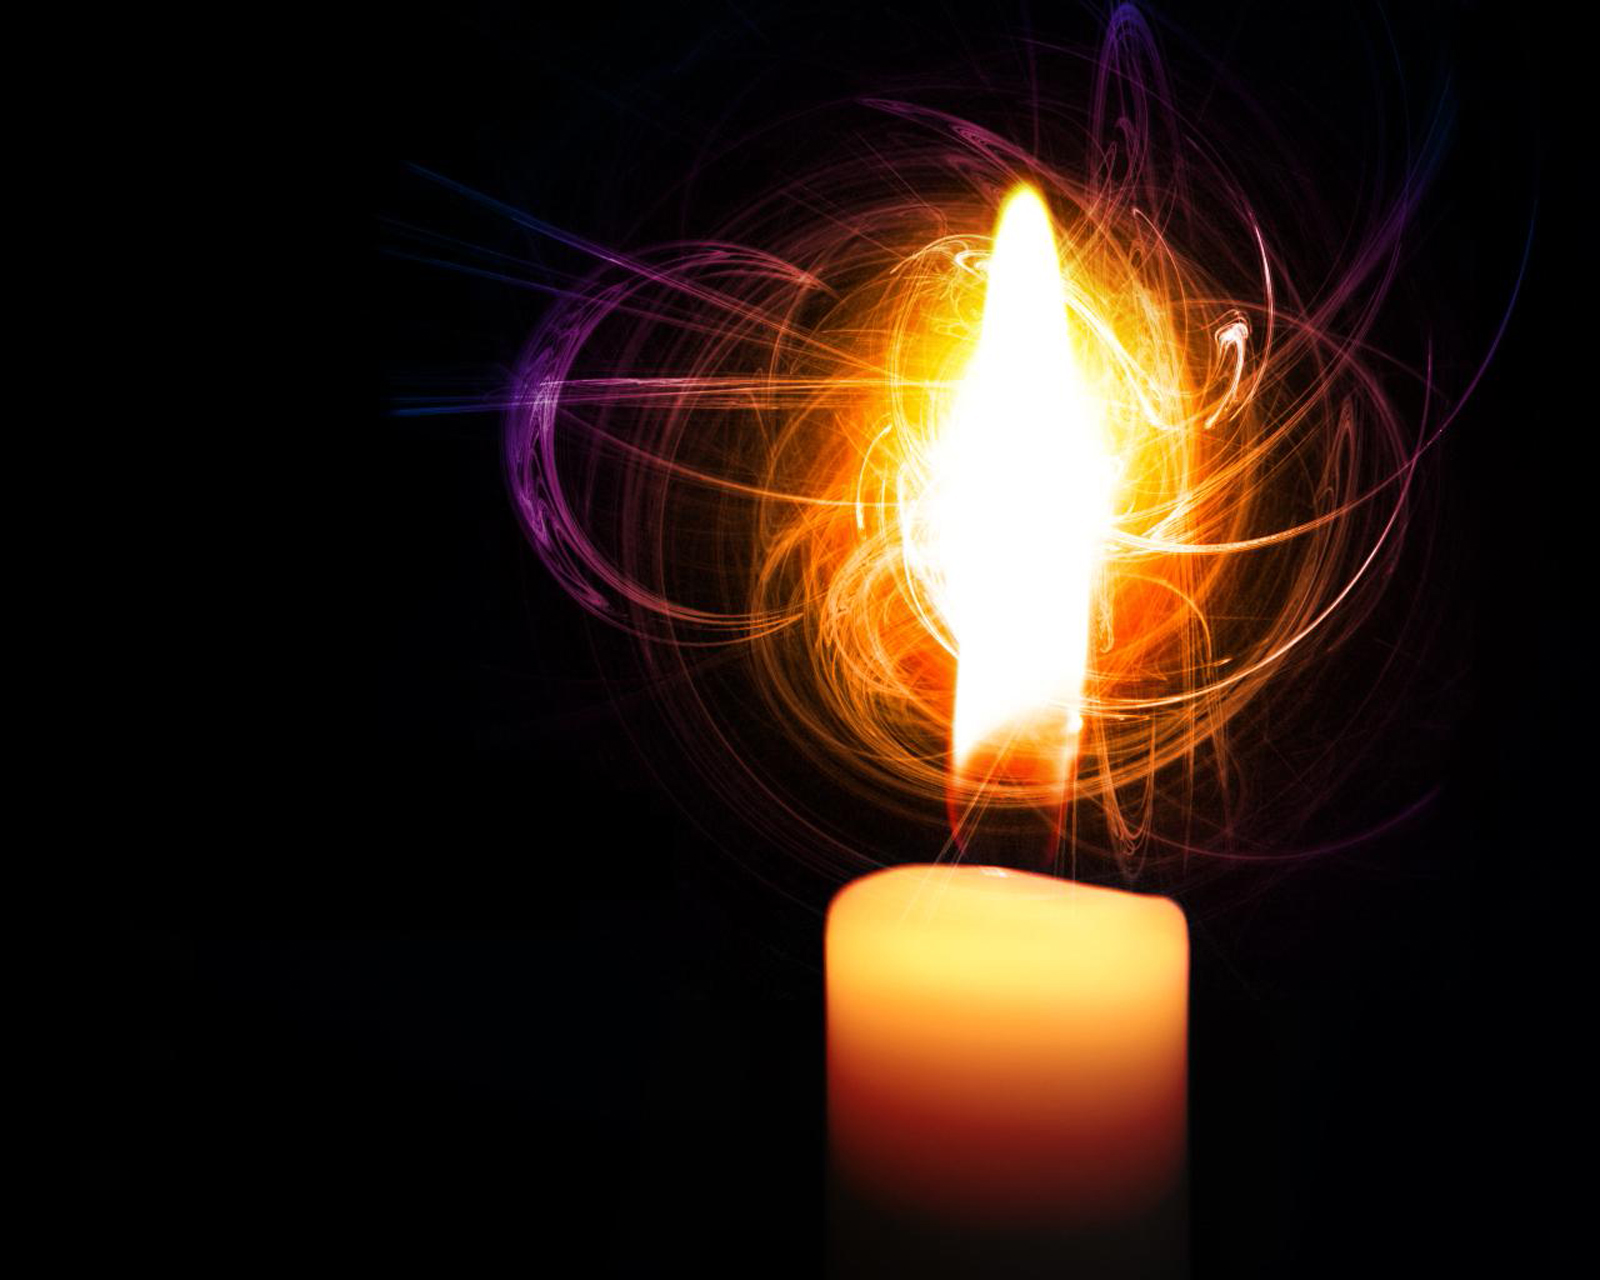 Candles Hd Wallpapers Candle Backgrounds And Images: Candle Pictures Stock Photos HD Wallpapers